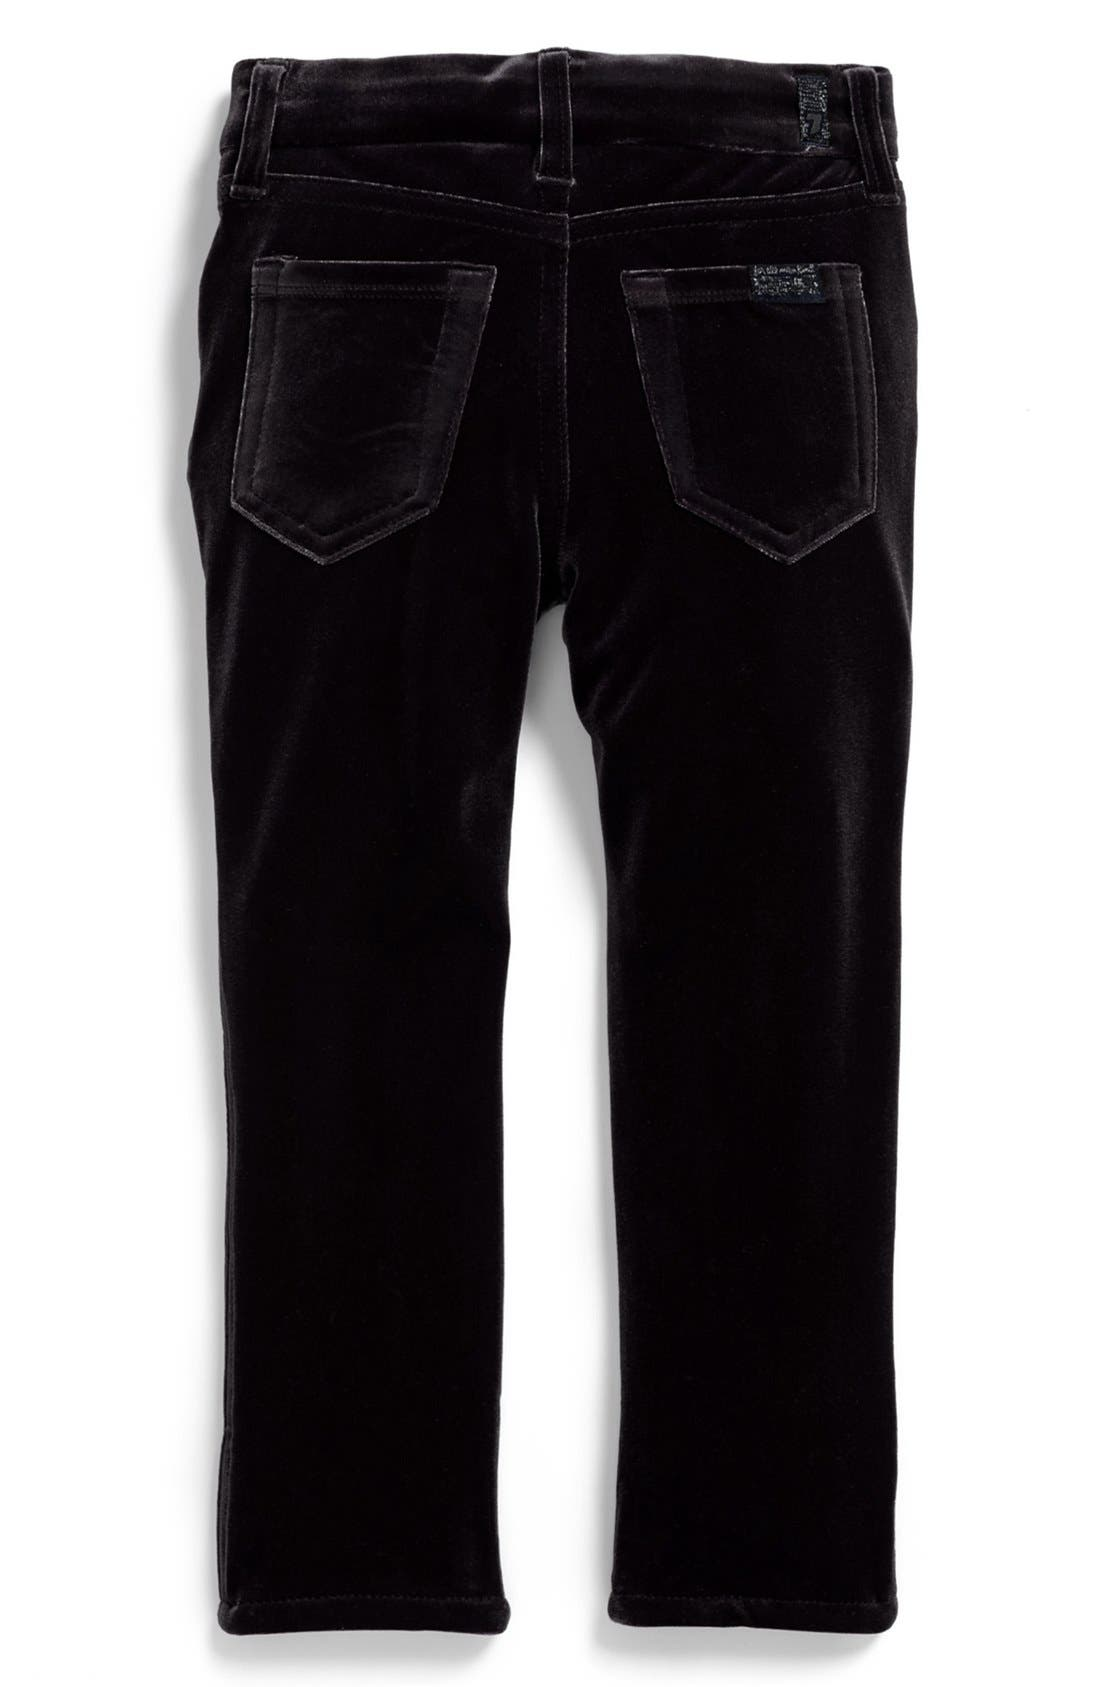 Main Image - 7 For All Mankind® 'The Skinny' Stretch Velveteen Jeans (Toddler Girls)